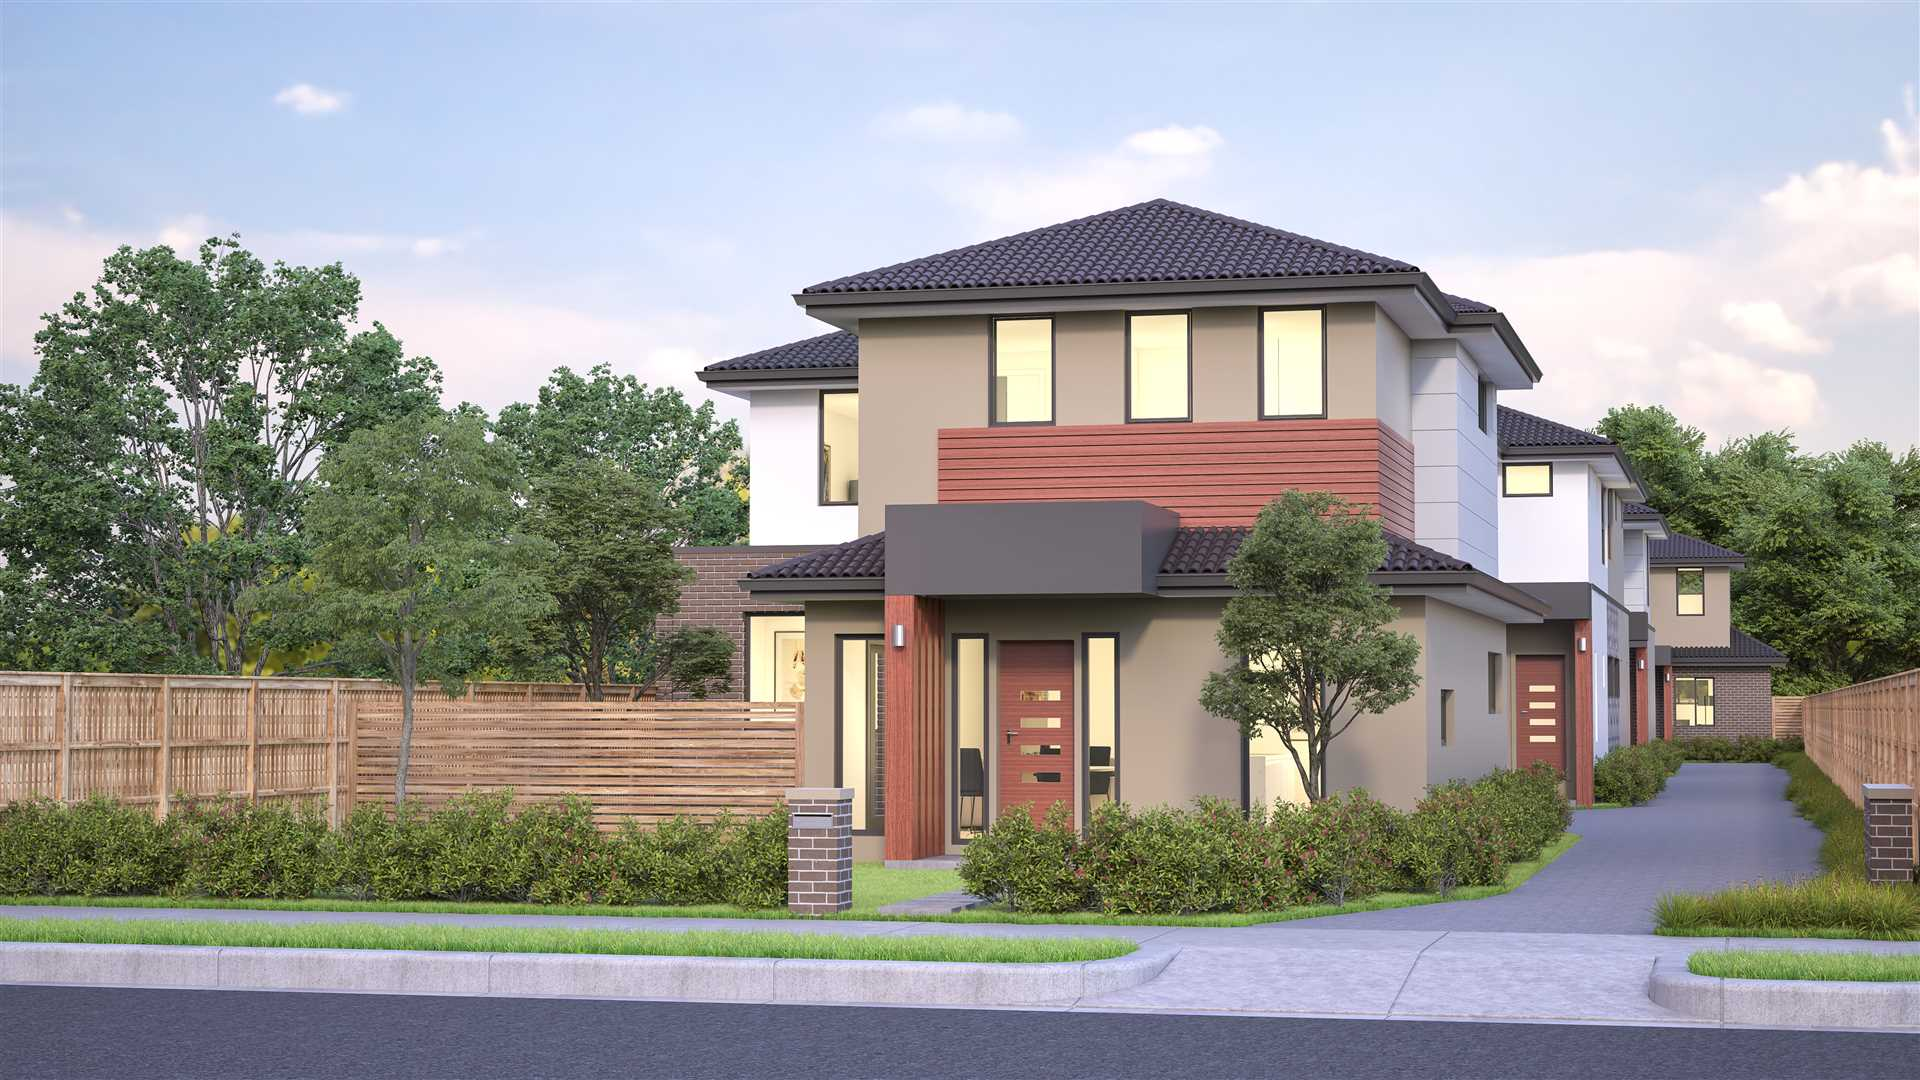 Off-the-plan Townhouse, Central Clayton, Stamp Duty Saving